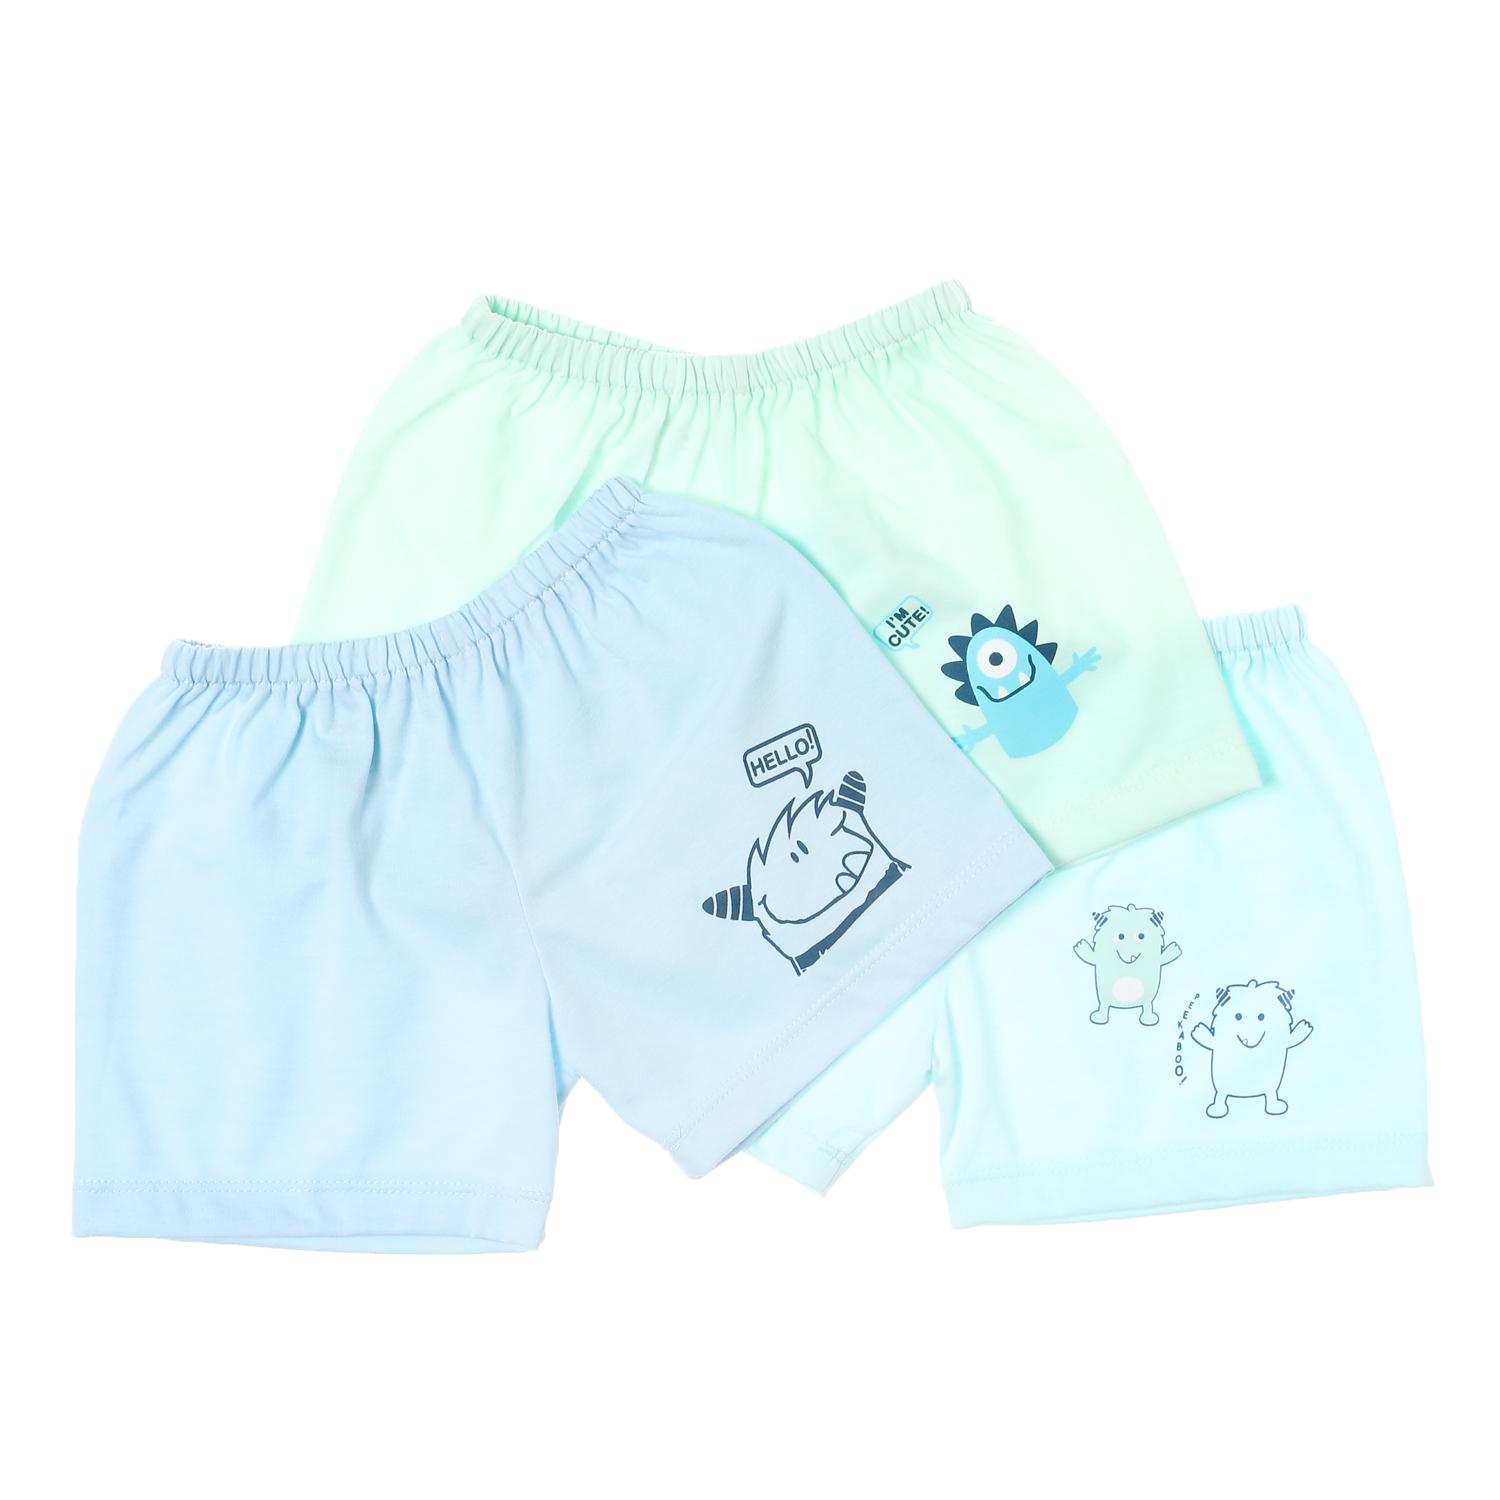 Sm Basics Baby Boys 3-Piece Im Cute Shorts Set By The Sm Store.